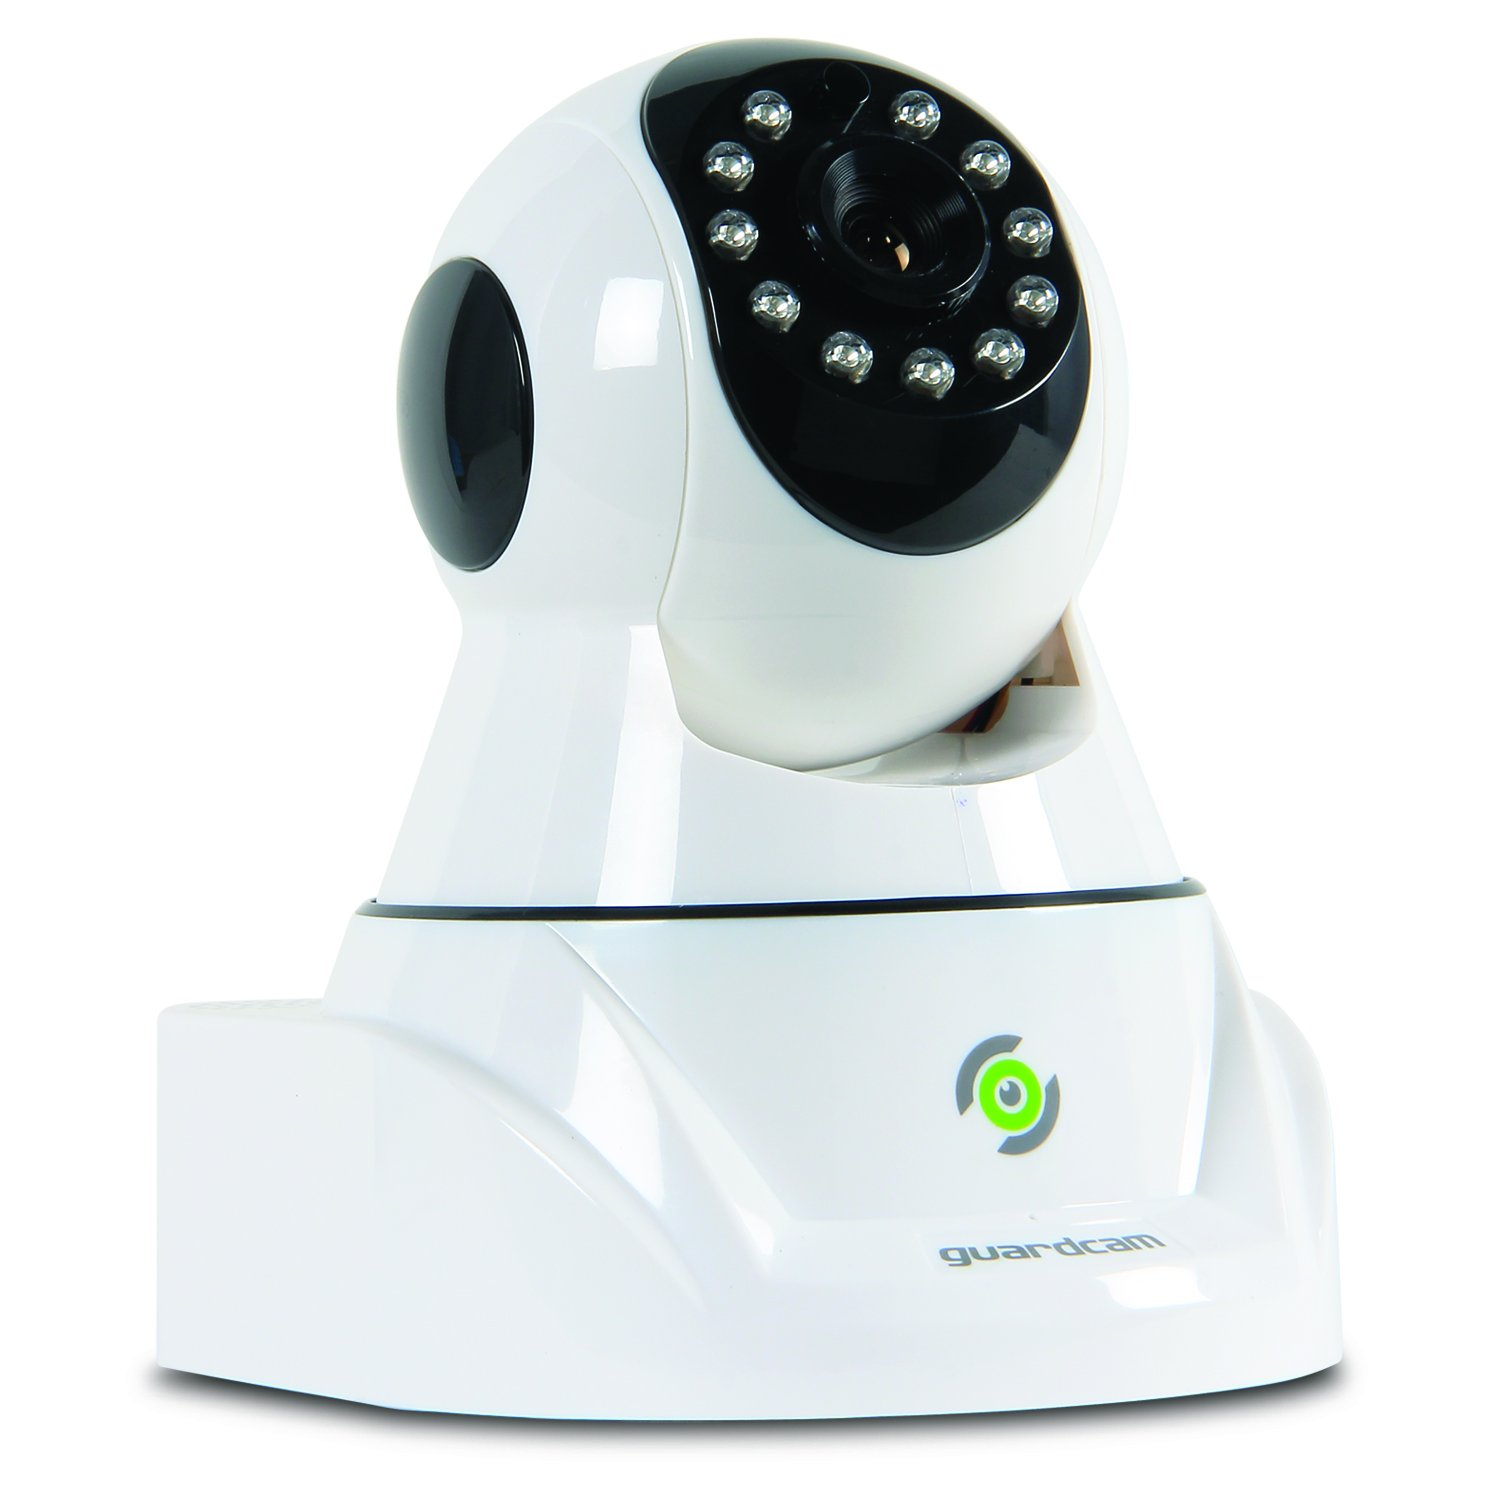 Pilot Electronics Guard Cam Wireless Security, Rotating Lens IP Camera, White (CL-4001)